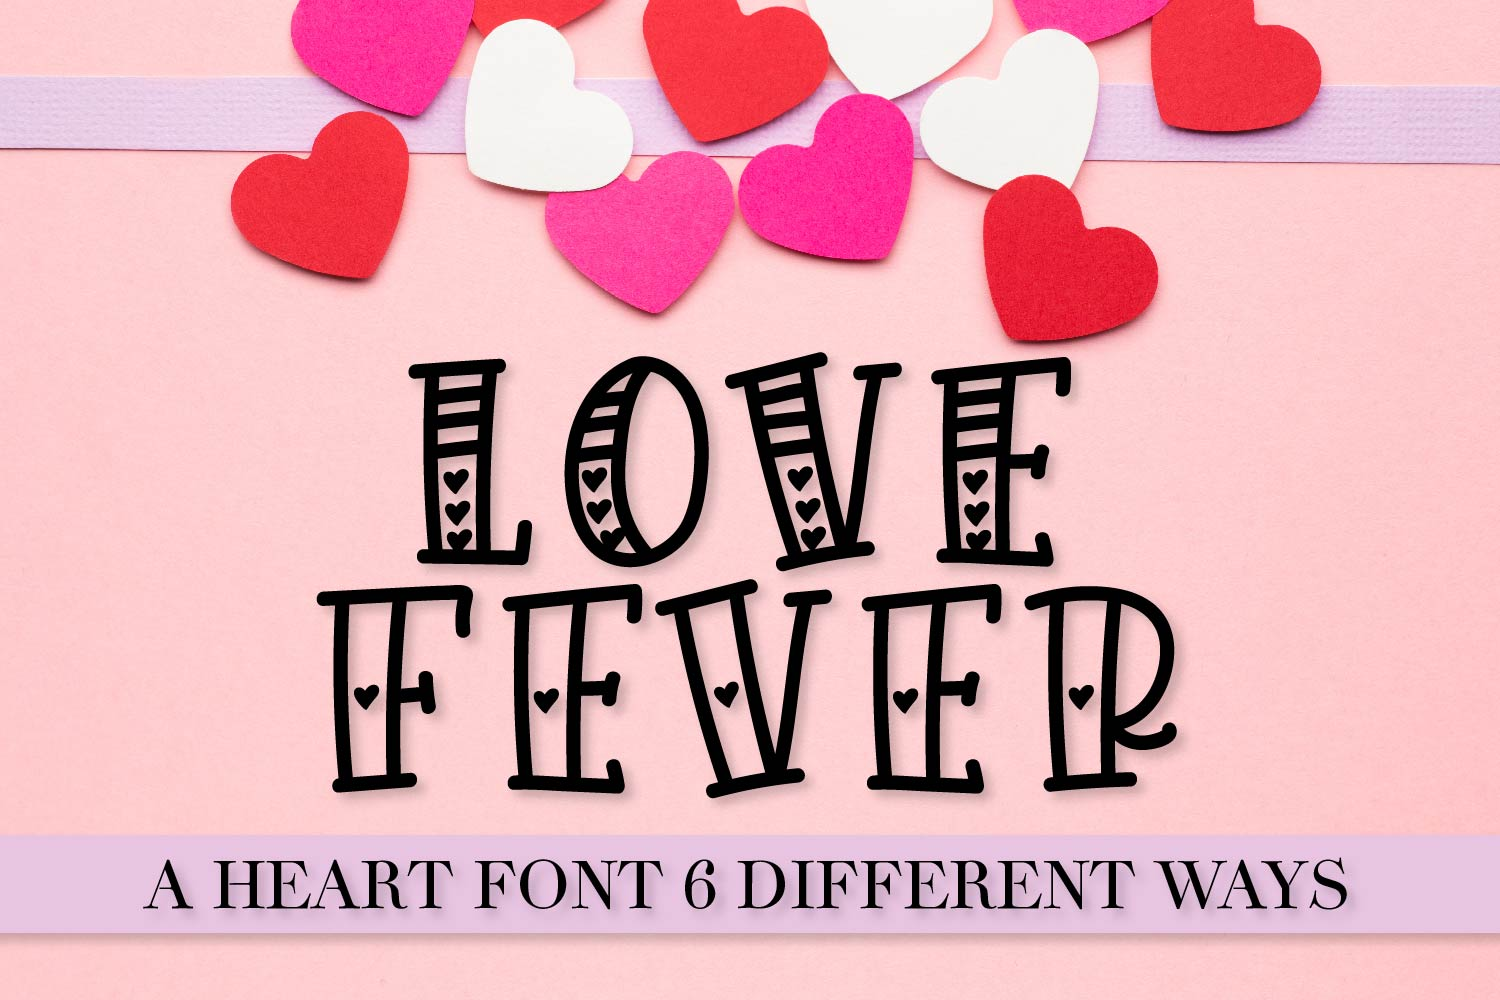 Download Free Love Fever Font By Justina Tracy Creative Fabrica for Cricut Explore, Silhouette and other cutting machines.